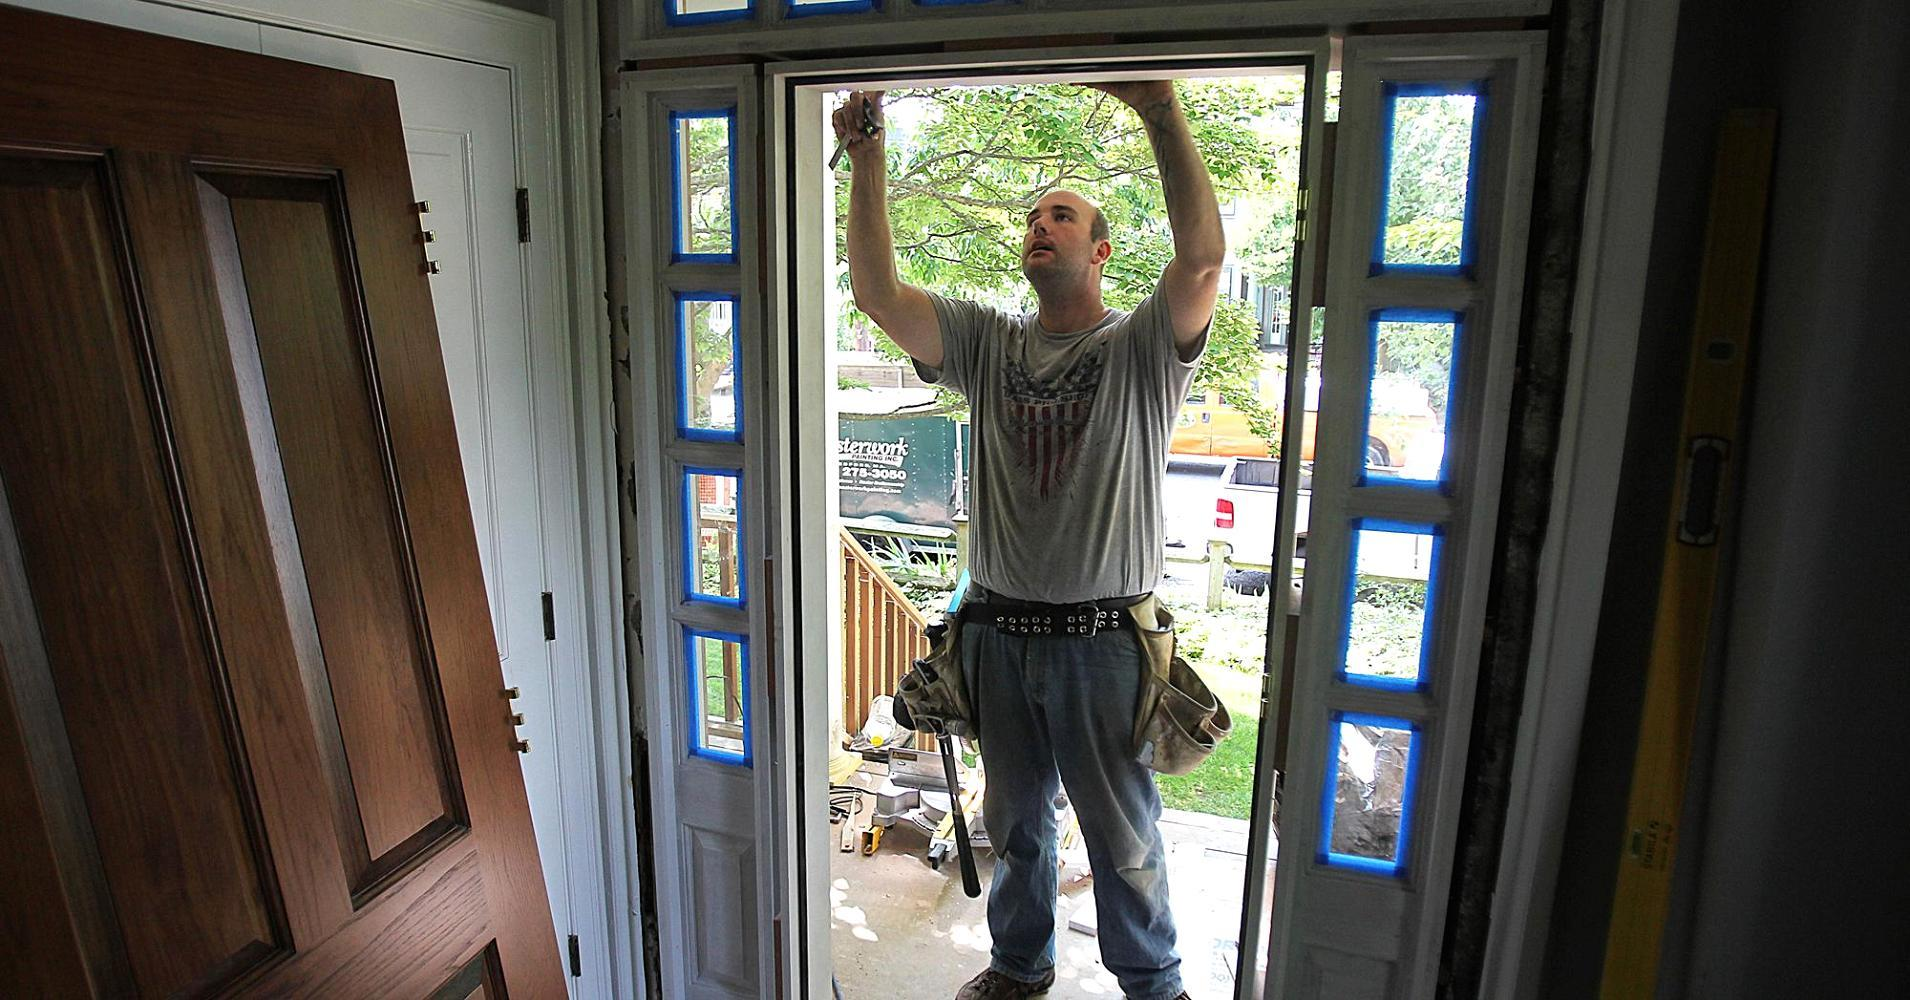 Competition rises as home remodeling goes digital